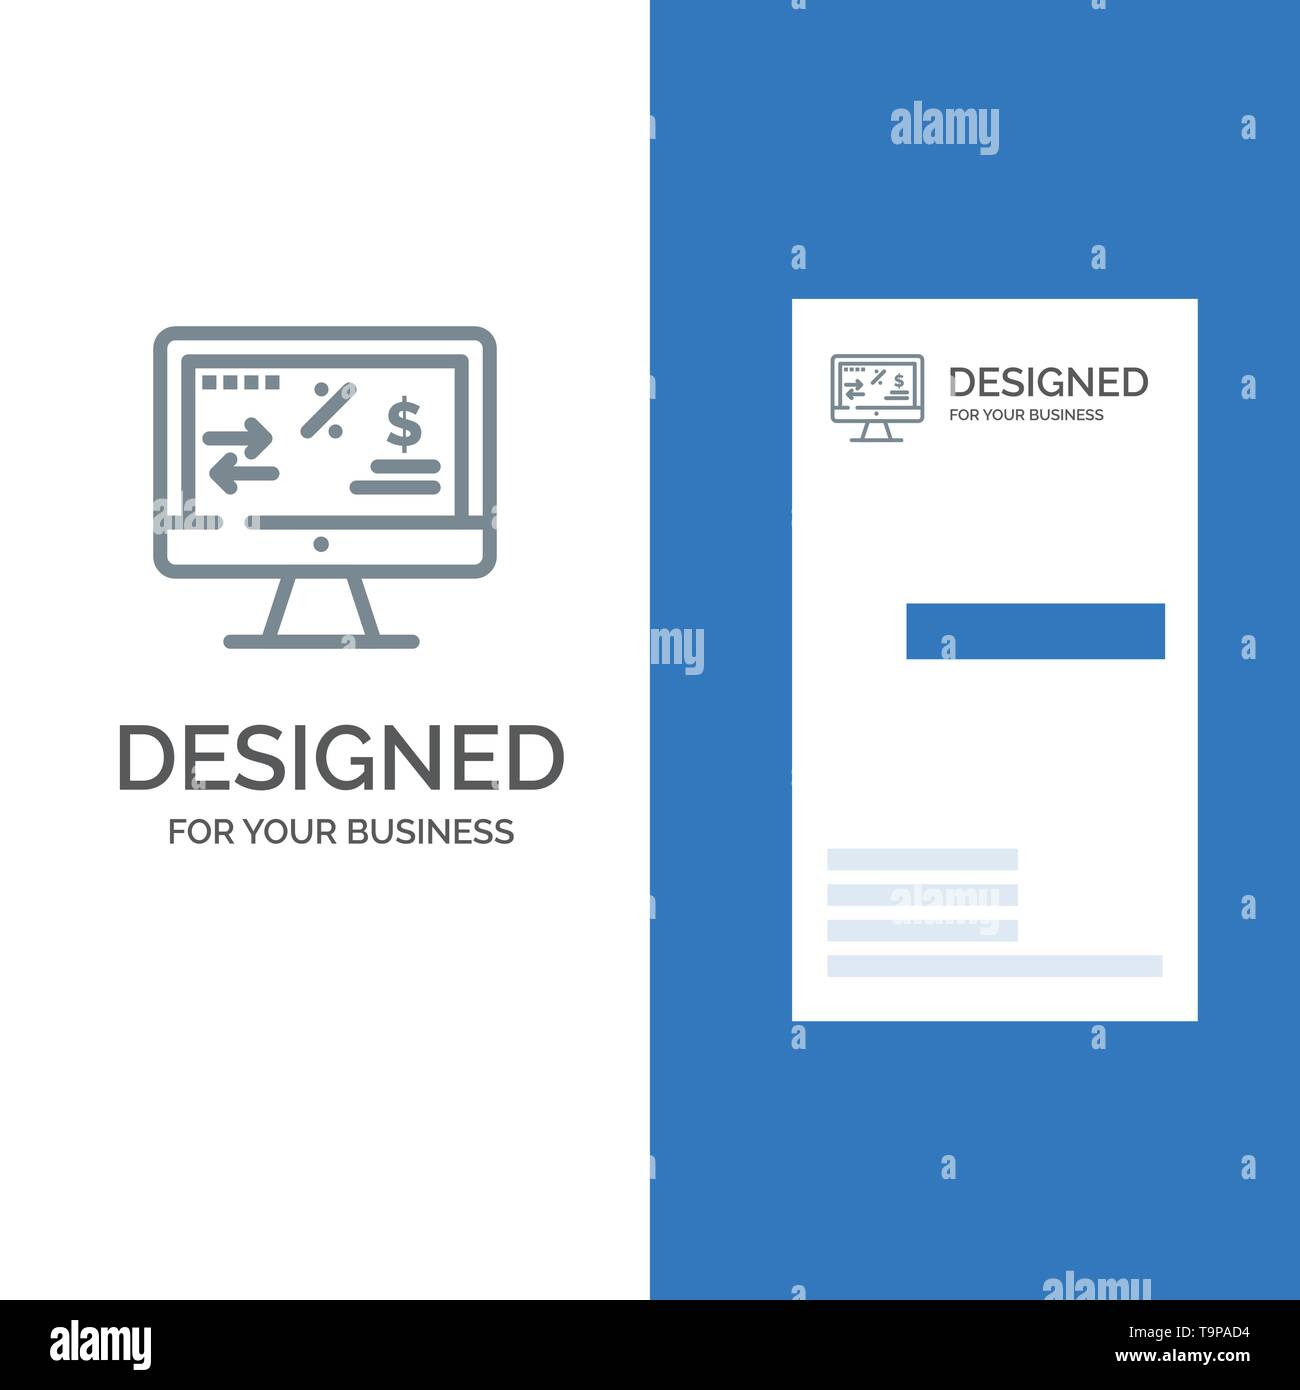 Tax Regulation, Finance, Income, Computer Grey Logo Design and Business Card Template - Stock Image